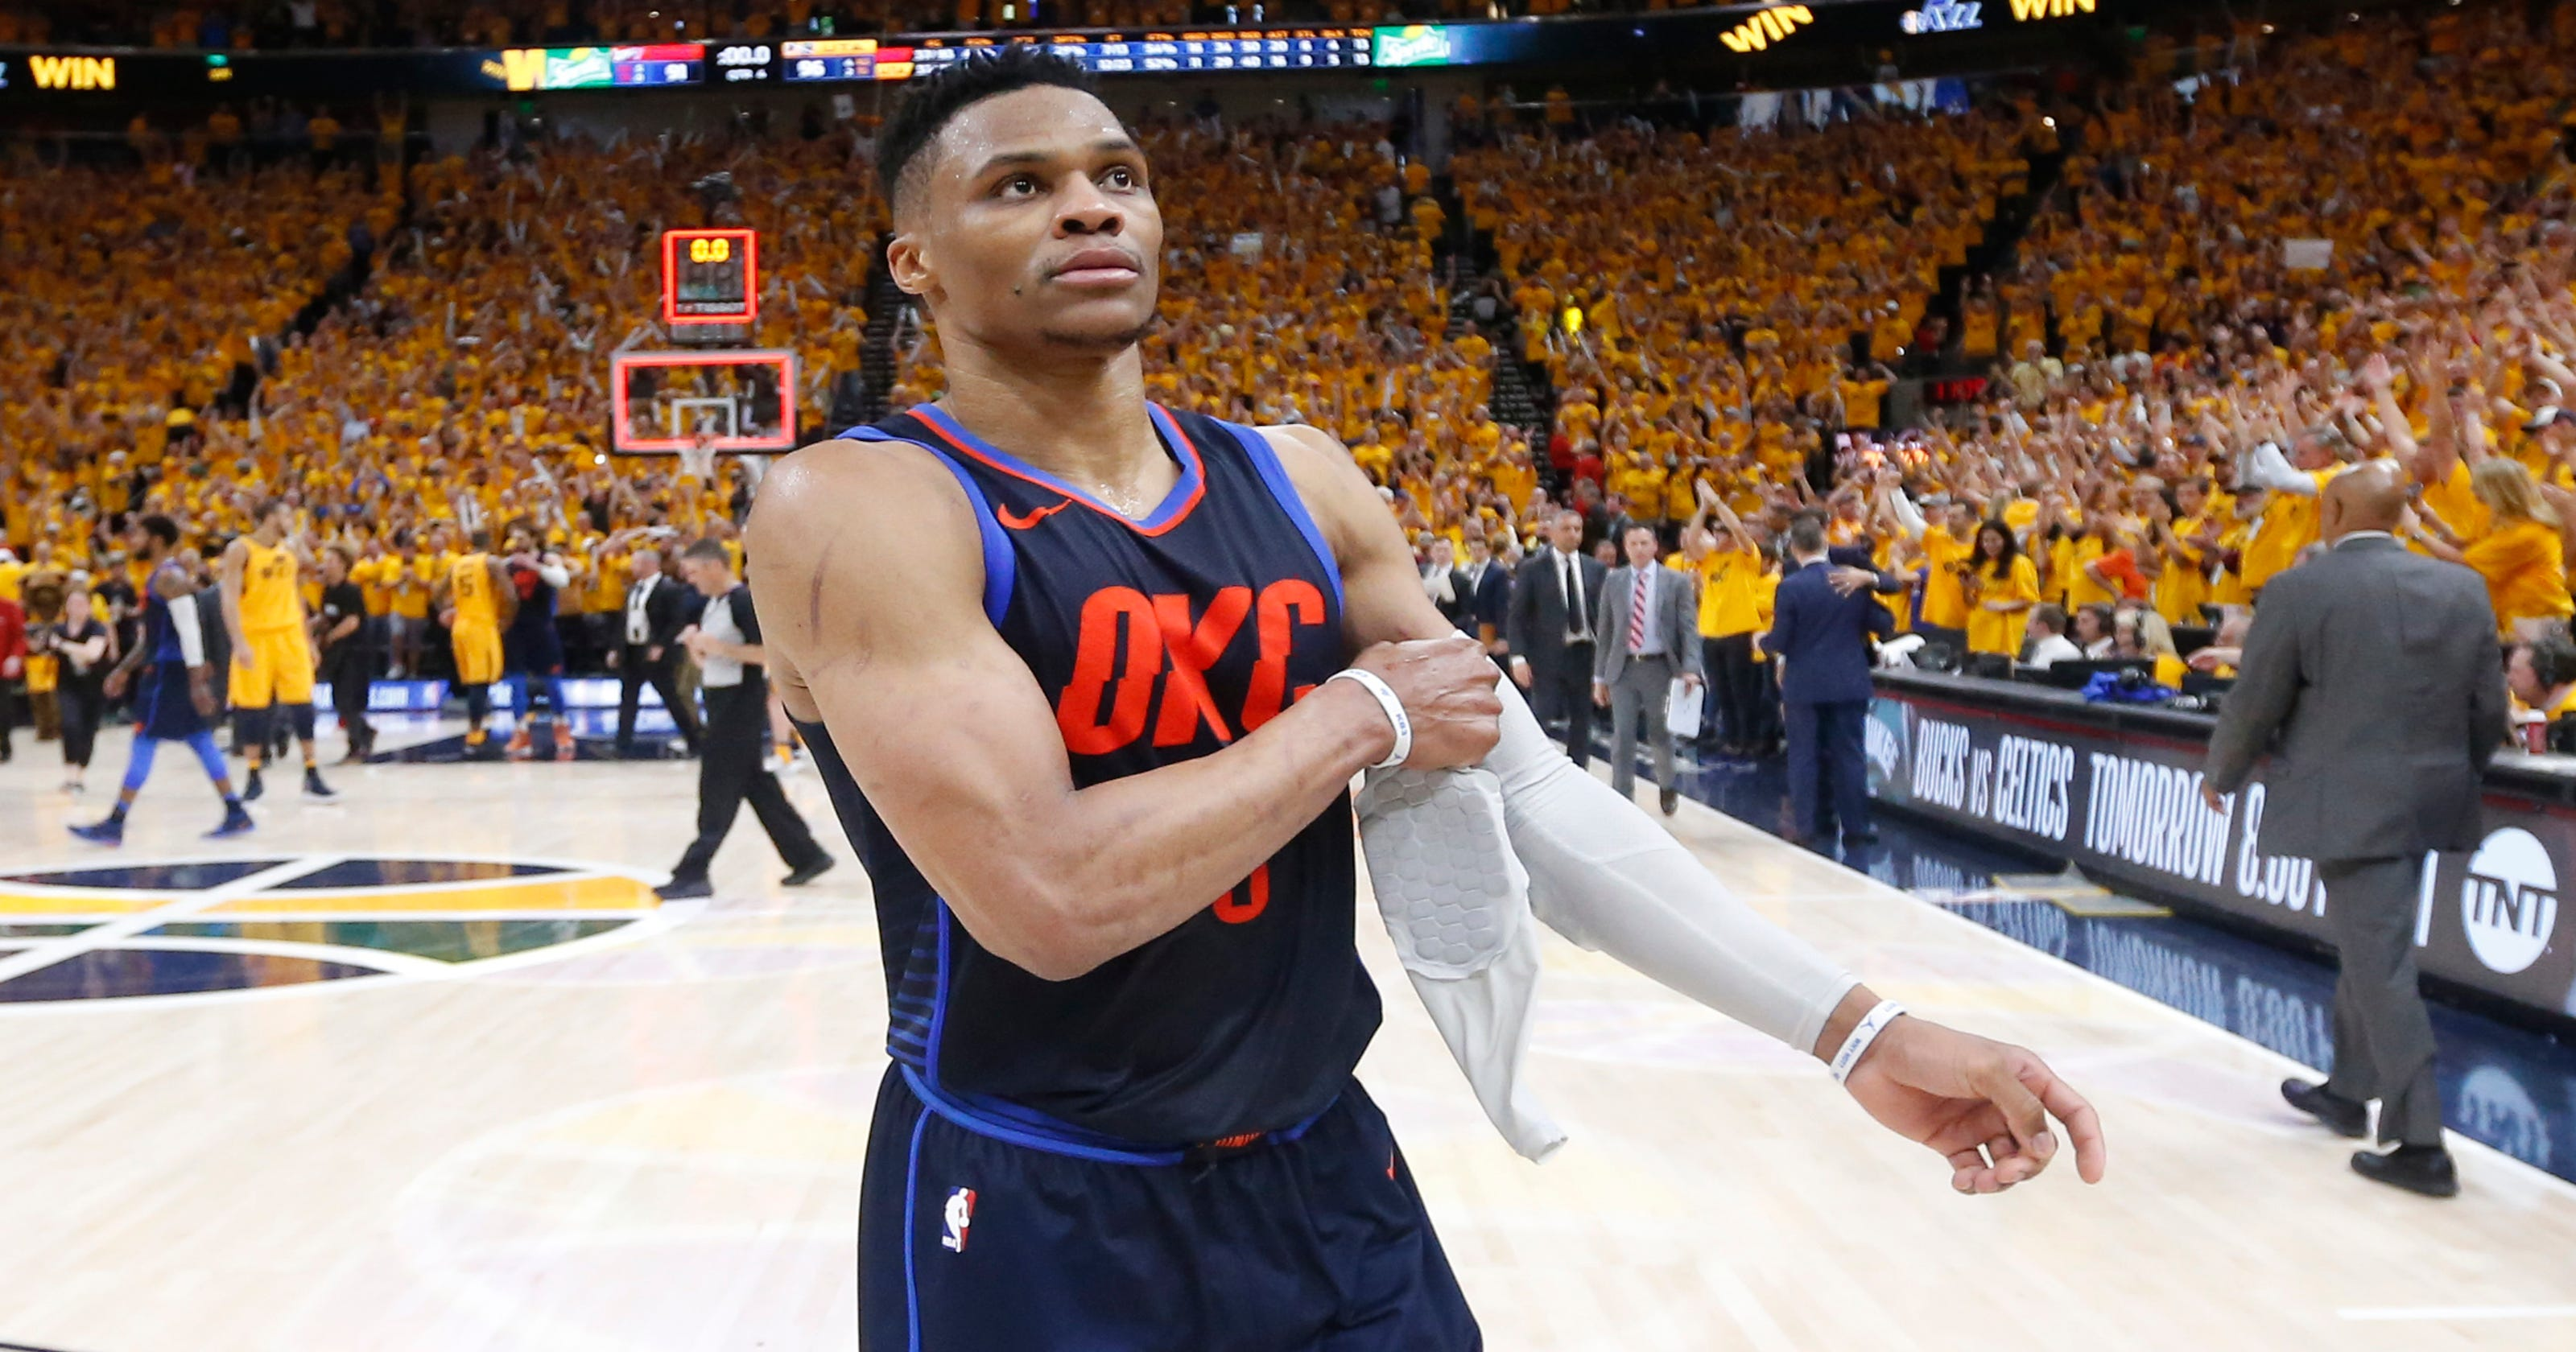 f7cab4b236d Russell Westbrook swipes at Utah Jazz fan in heated exchange